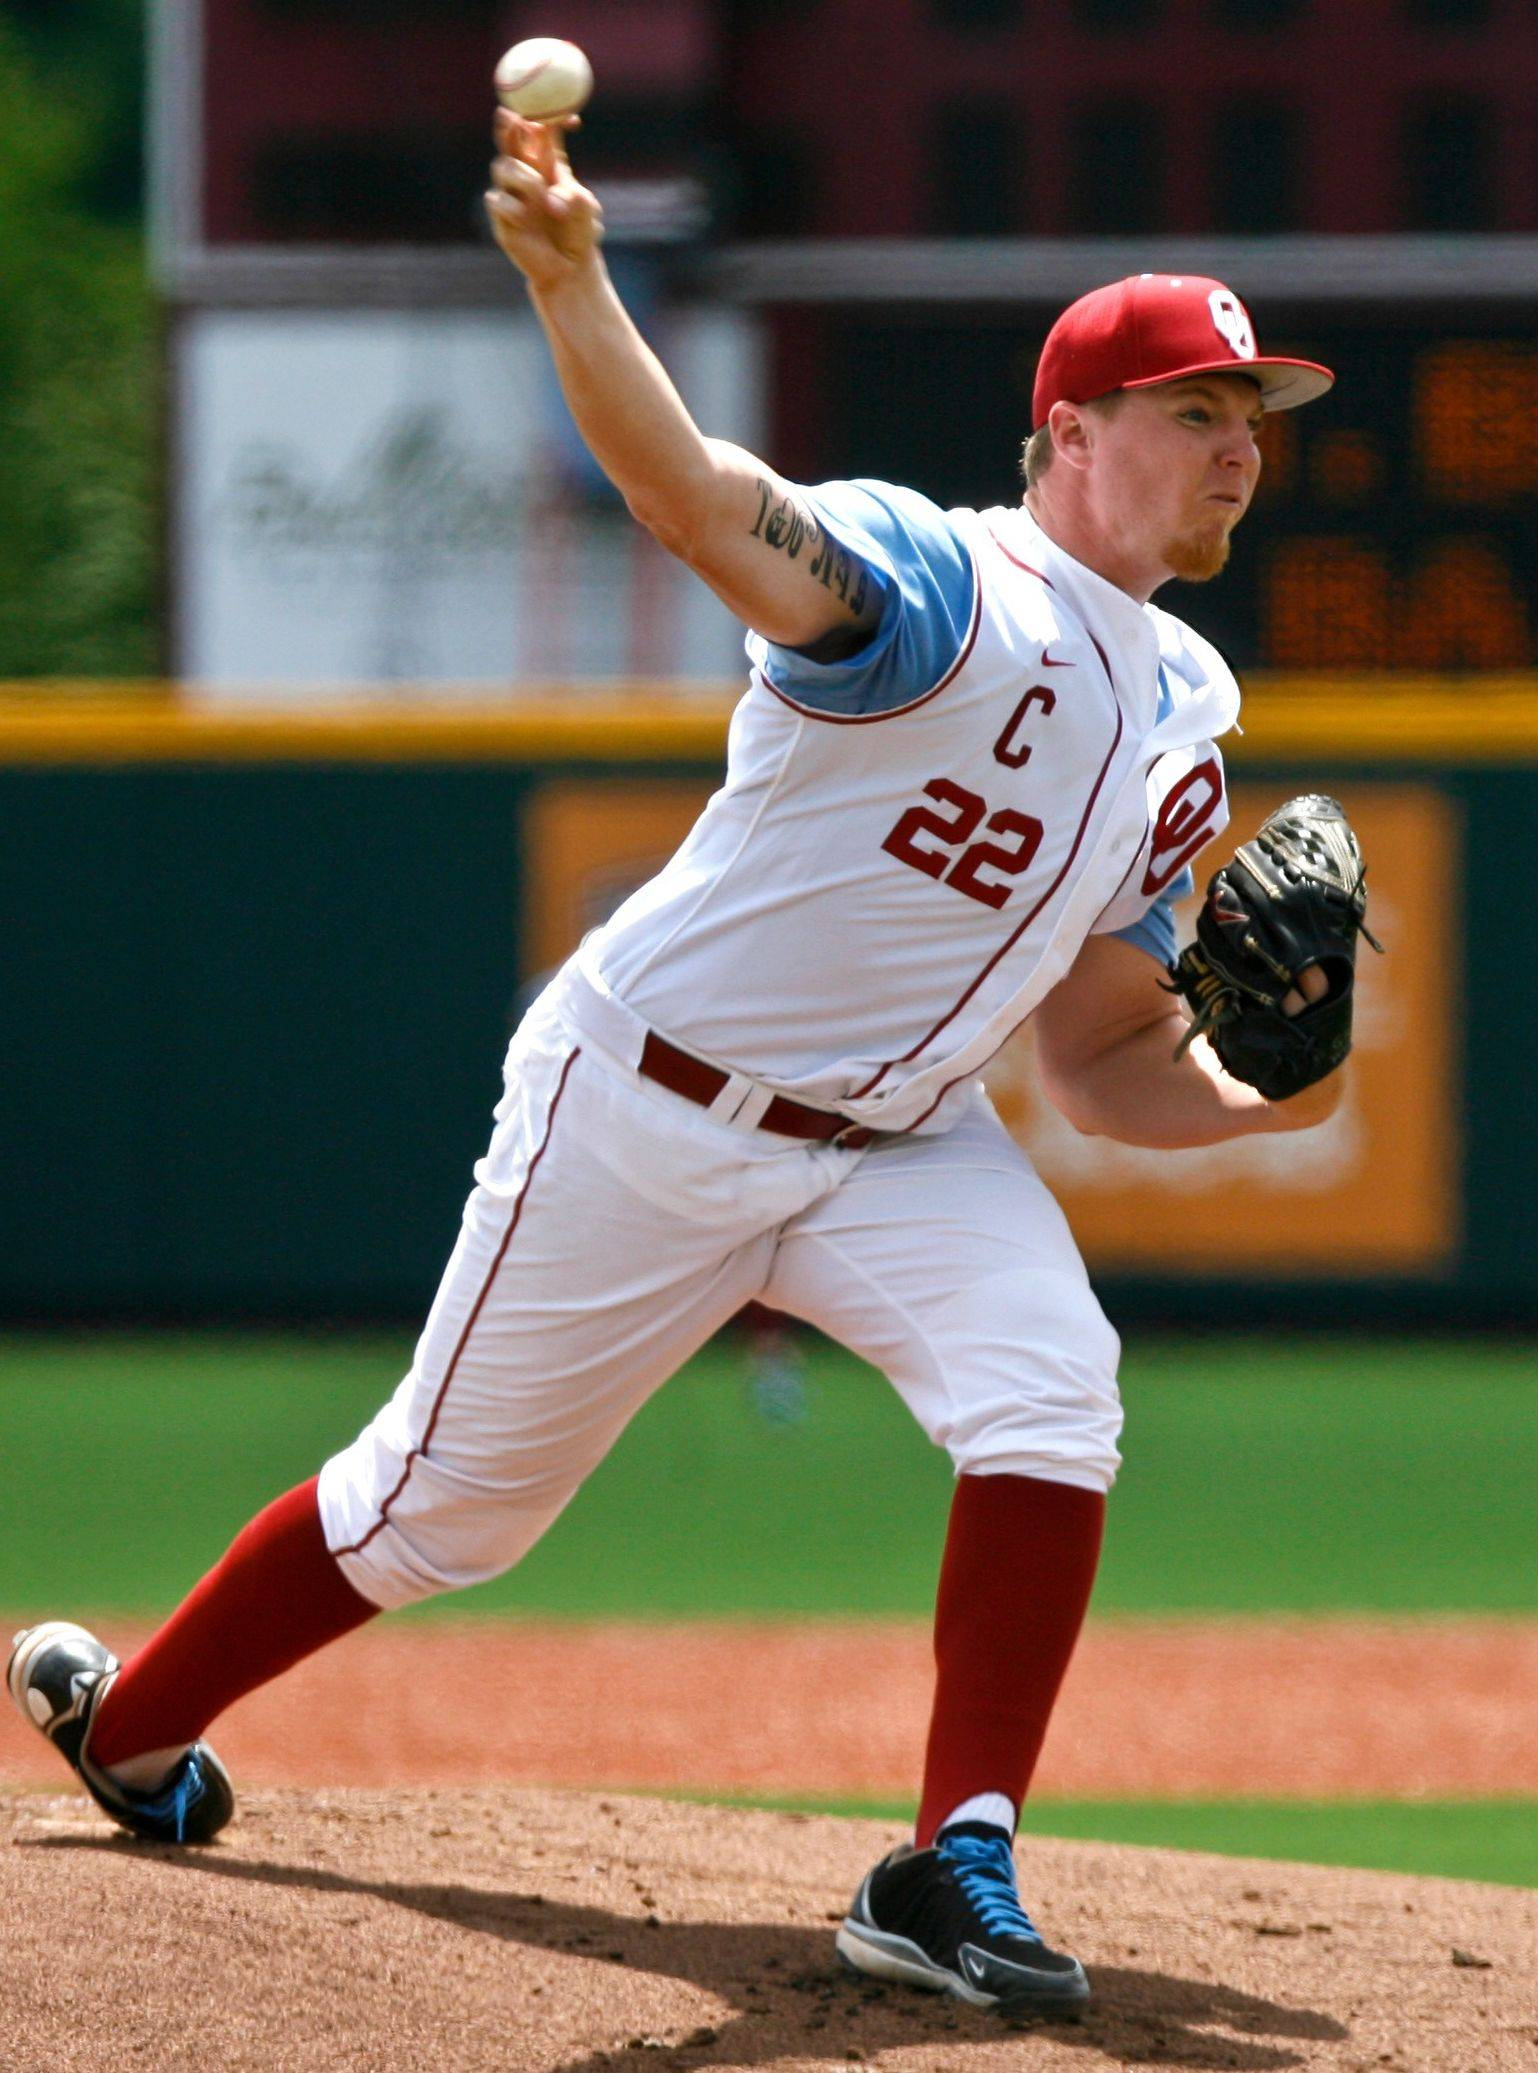 Oklahoma starter Jonathan Gray (above) and Stanford's Mark Appel could turn into the next Justin Verlander or Josh Beckett. Matt Spiegel says it would be tough for the Cubs to pass up either one with the second pick of the MLB draft Thursday.